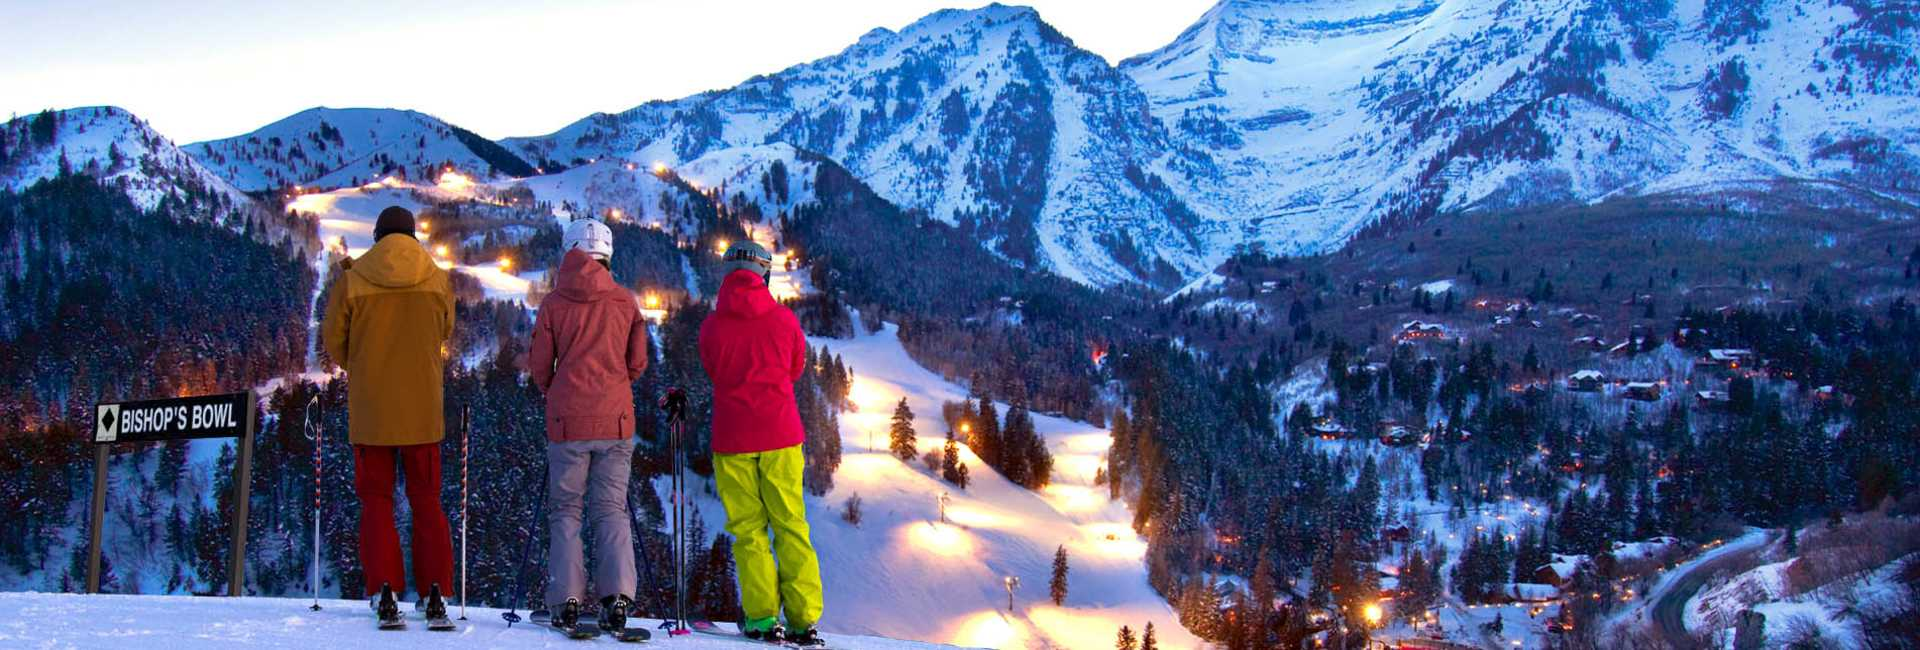 Sundance Mountain Resort - 2019 season passes